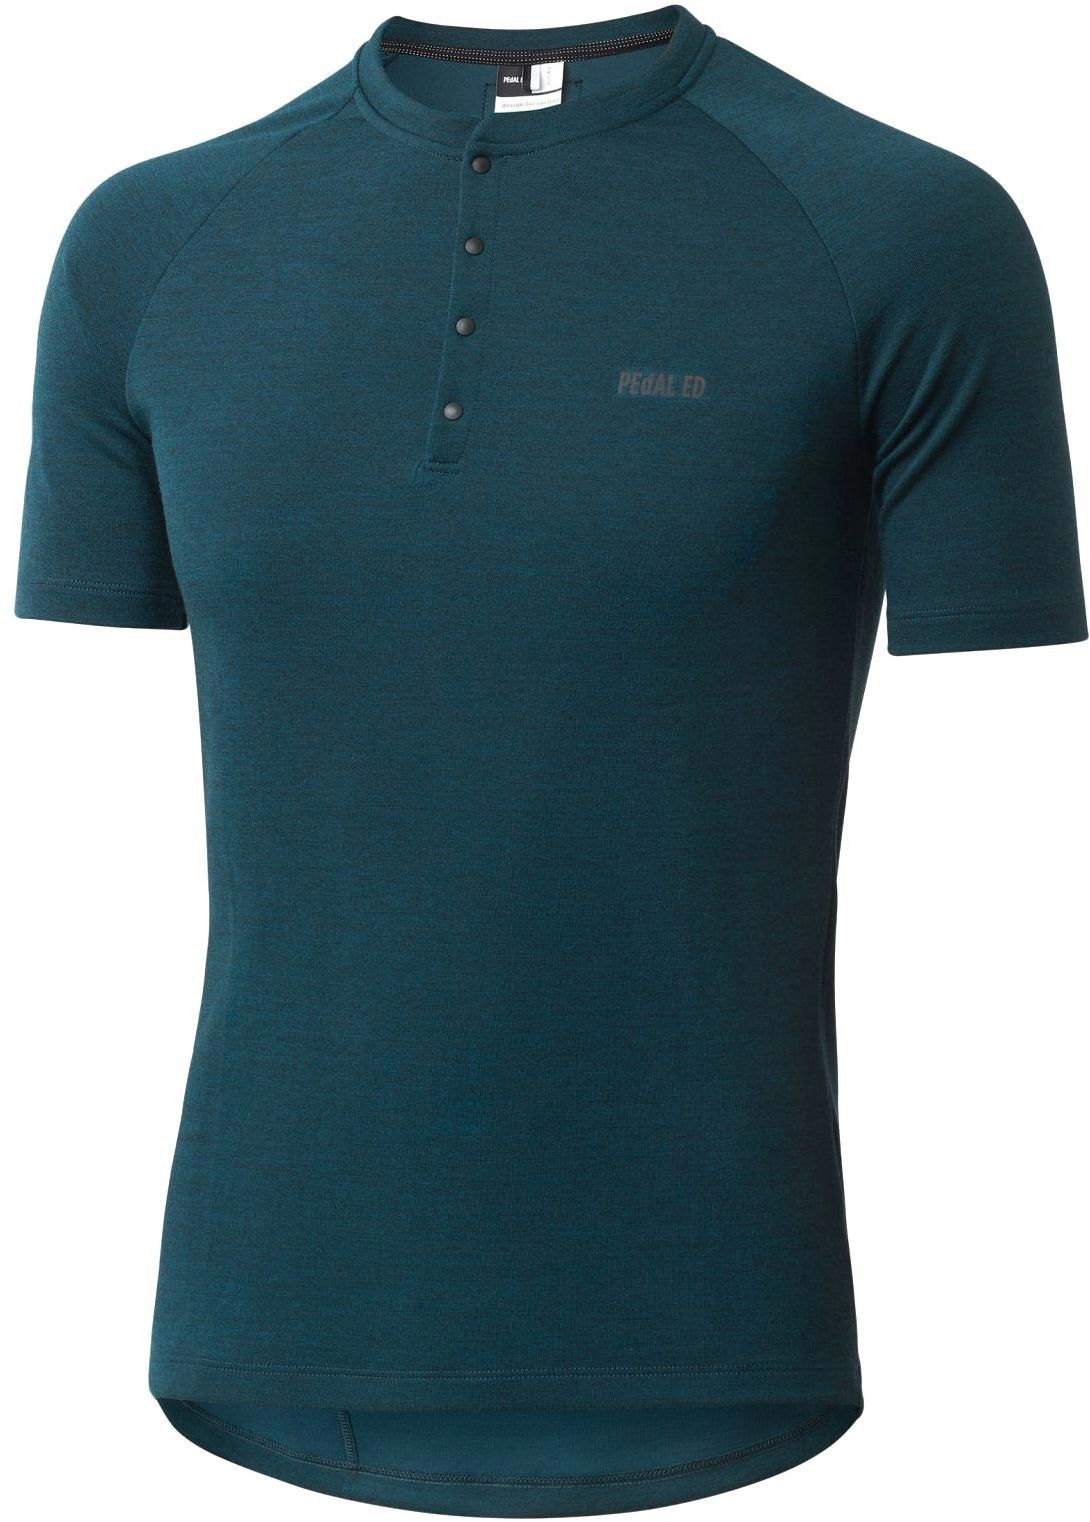 PEdAL ED Jary All-Road Merino Jersey - teal M